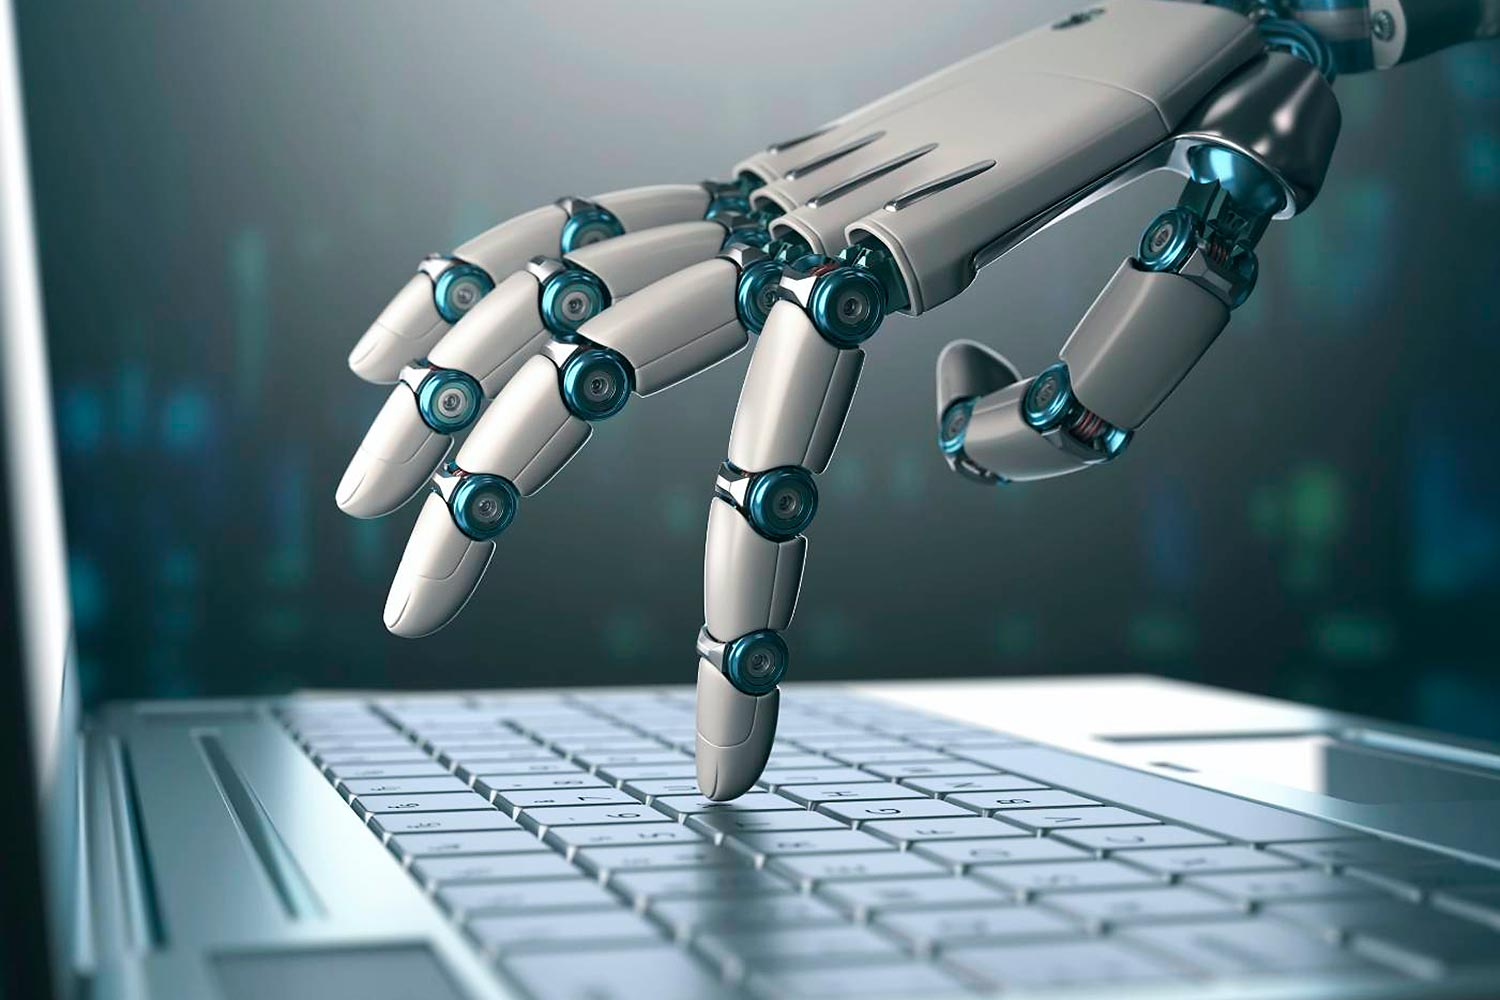 Enterprises are being urged to learn and adopt robotic process automation (RPA) technology in their businesses.